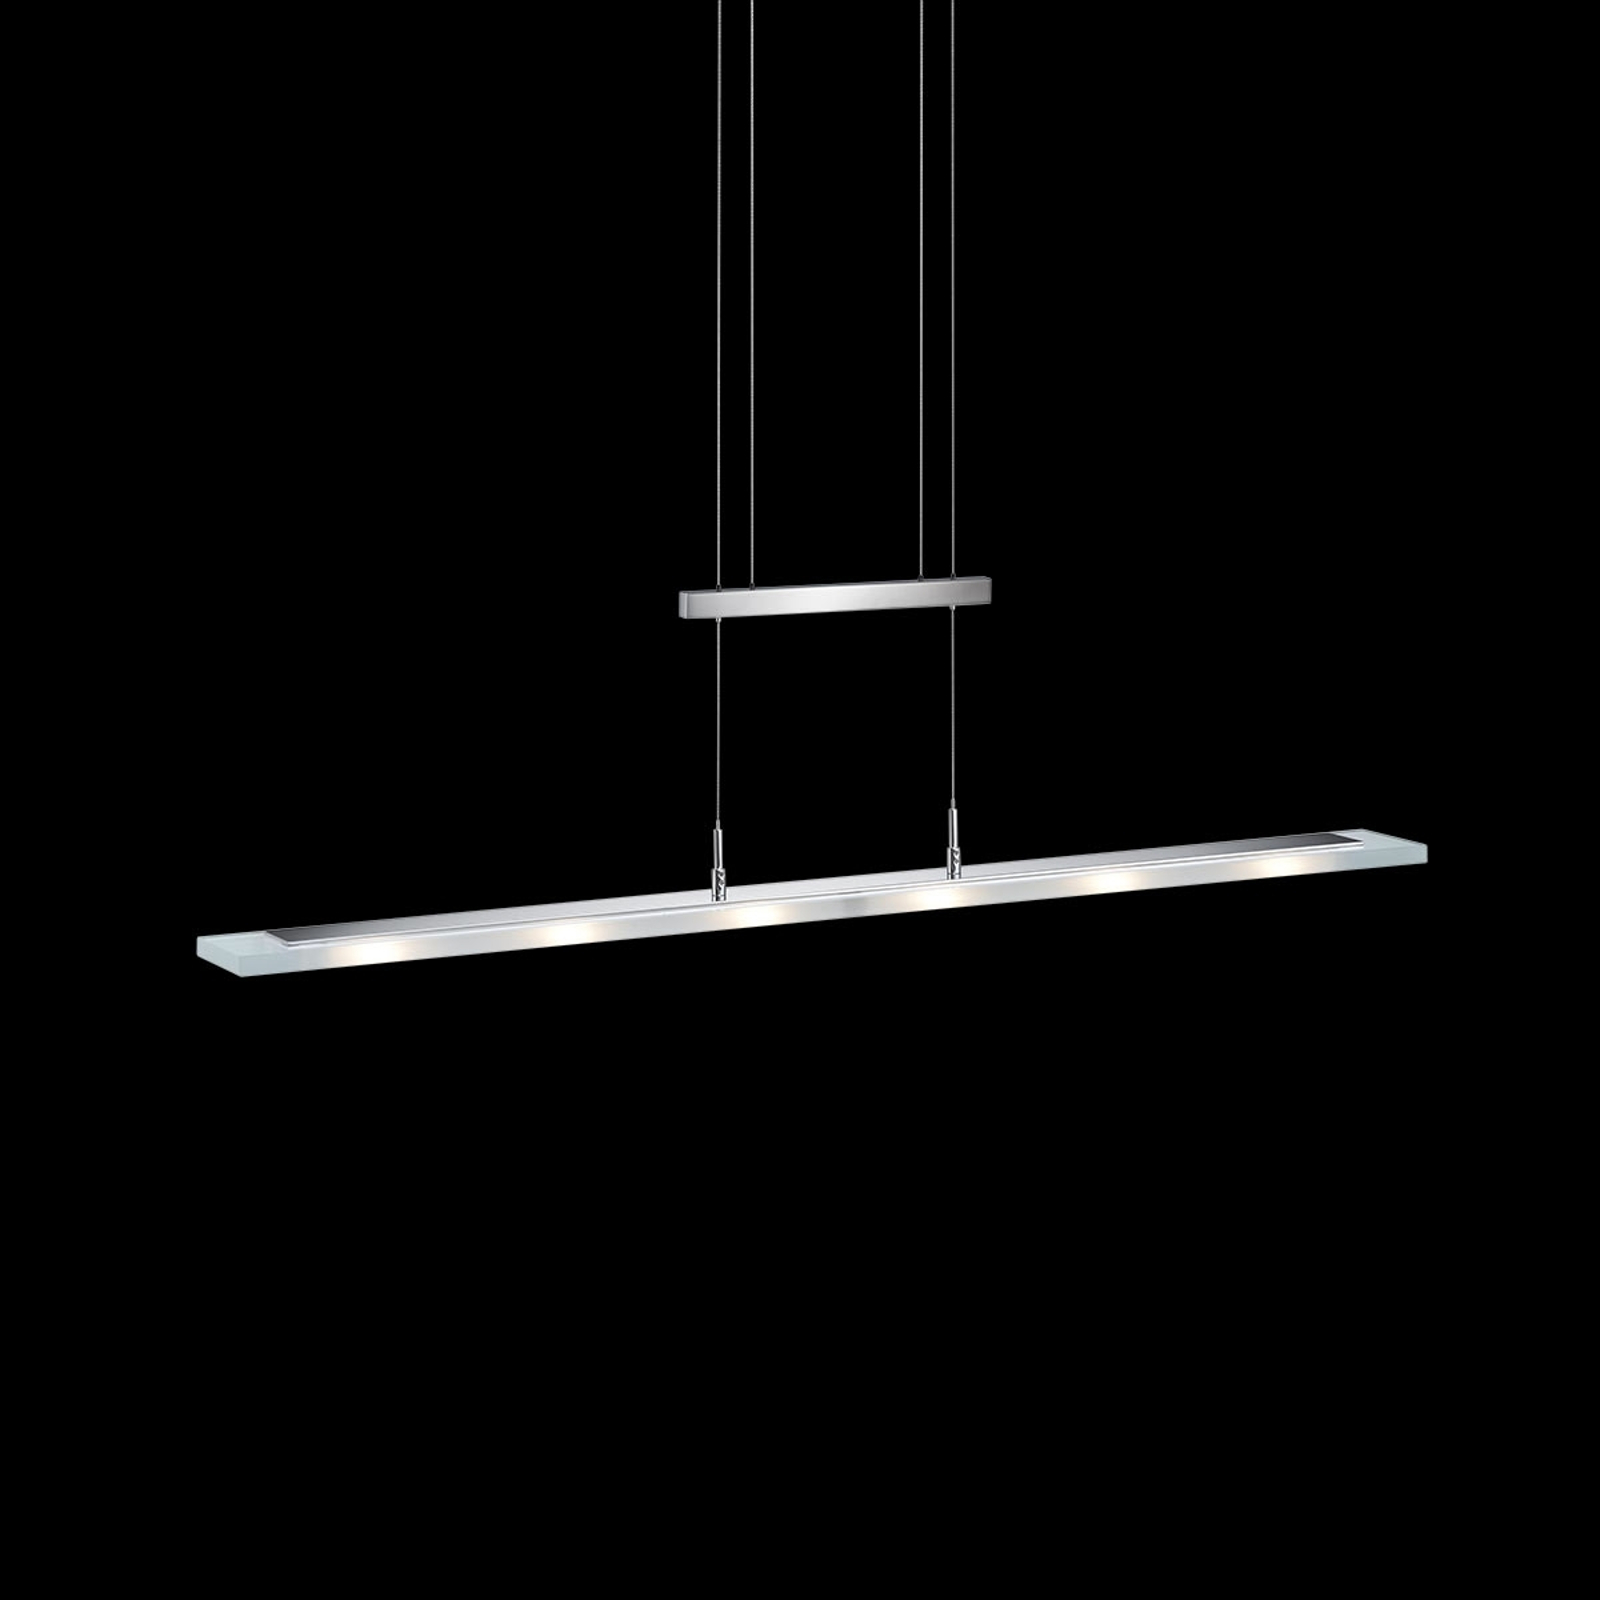 Suspension LED Nala à intensité variable nickel